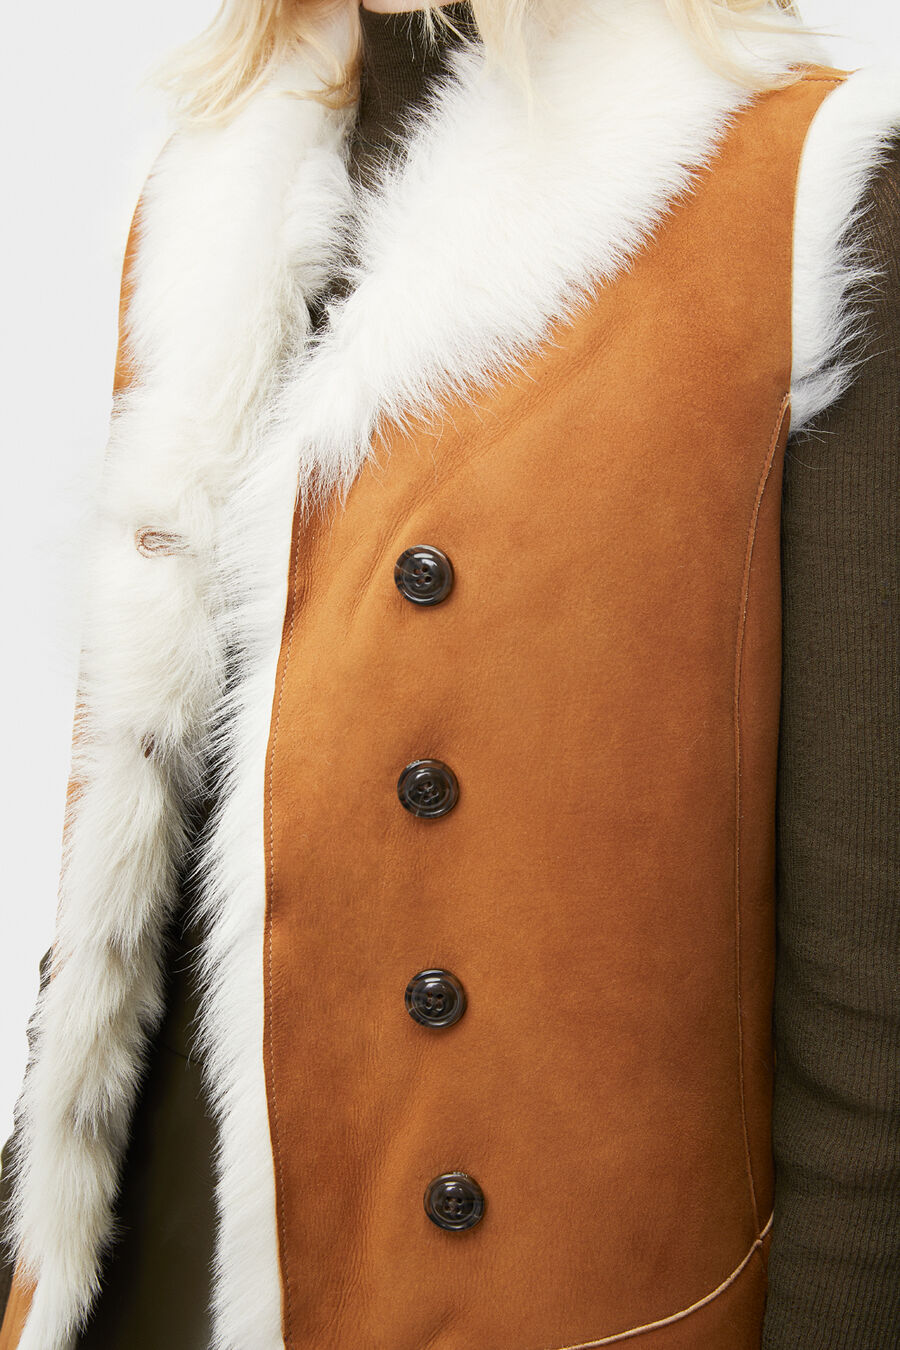 Renee Toscana Shearling Vest  - Image 3 of 5